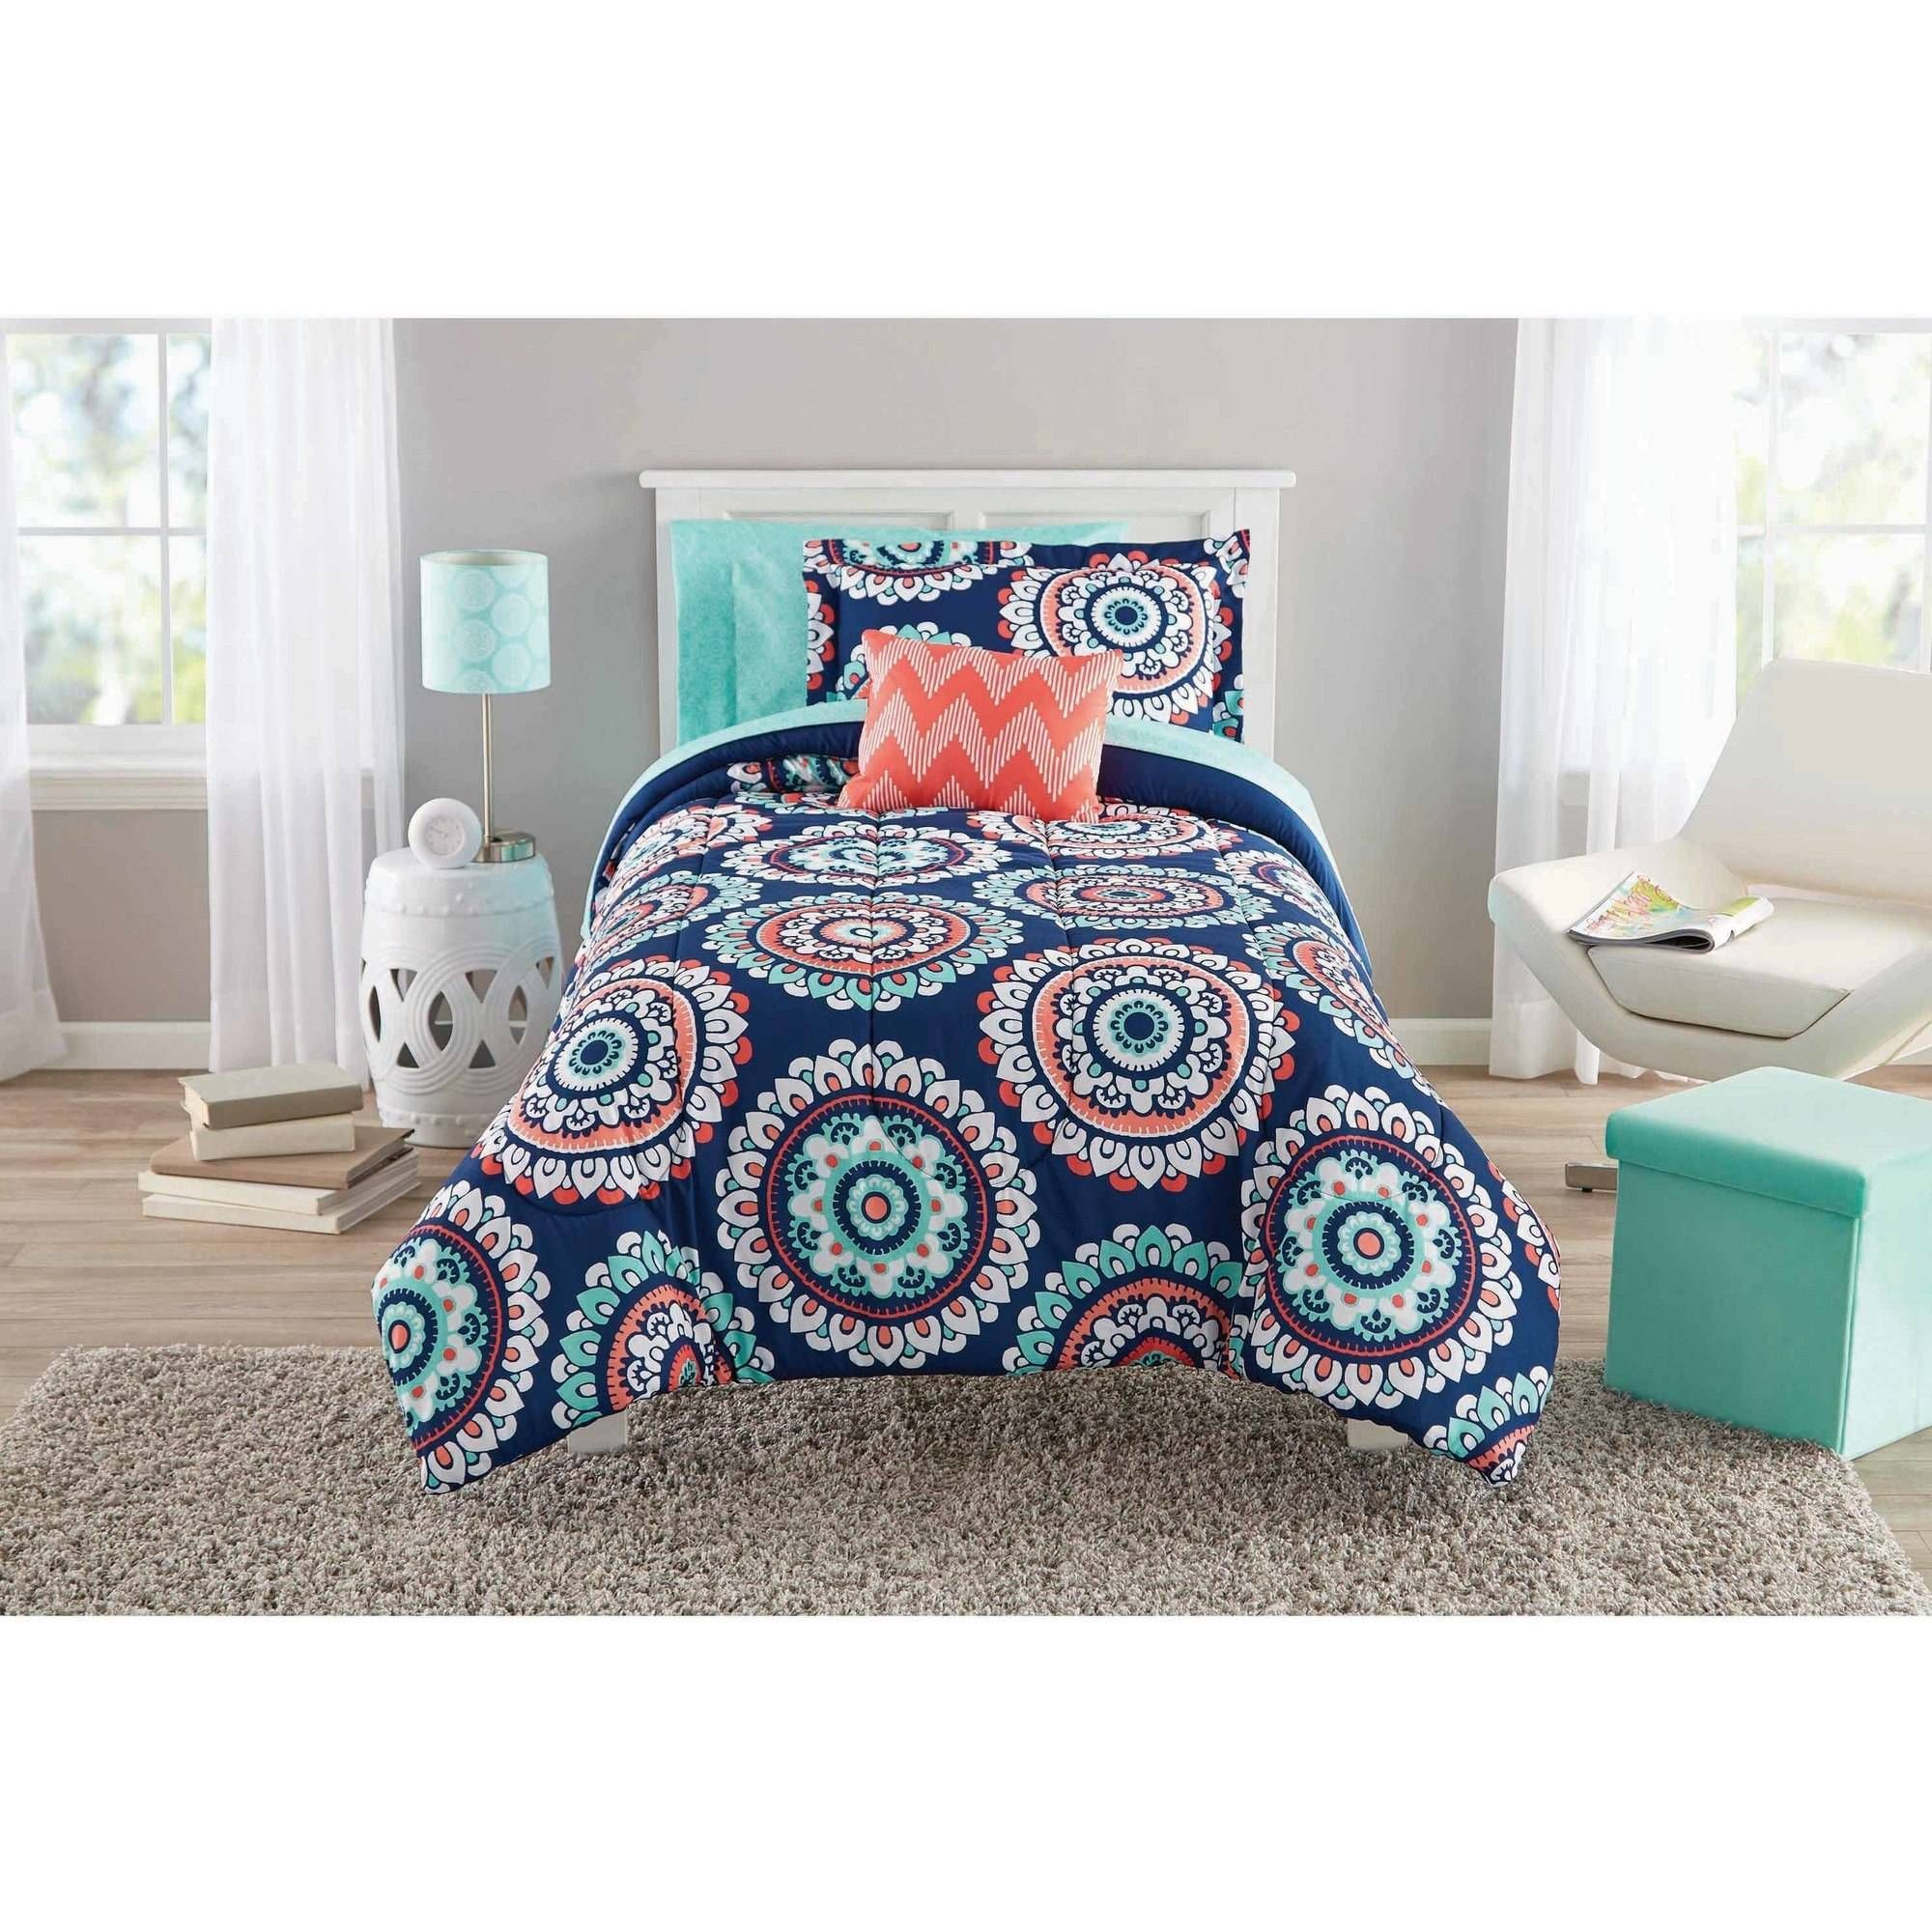 zone set bag mi bath bed sea shipping under product sheet overstock in with a piece the kids blue bedding printed today free